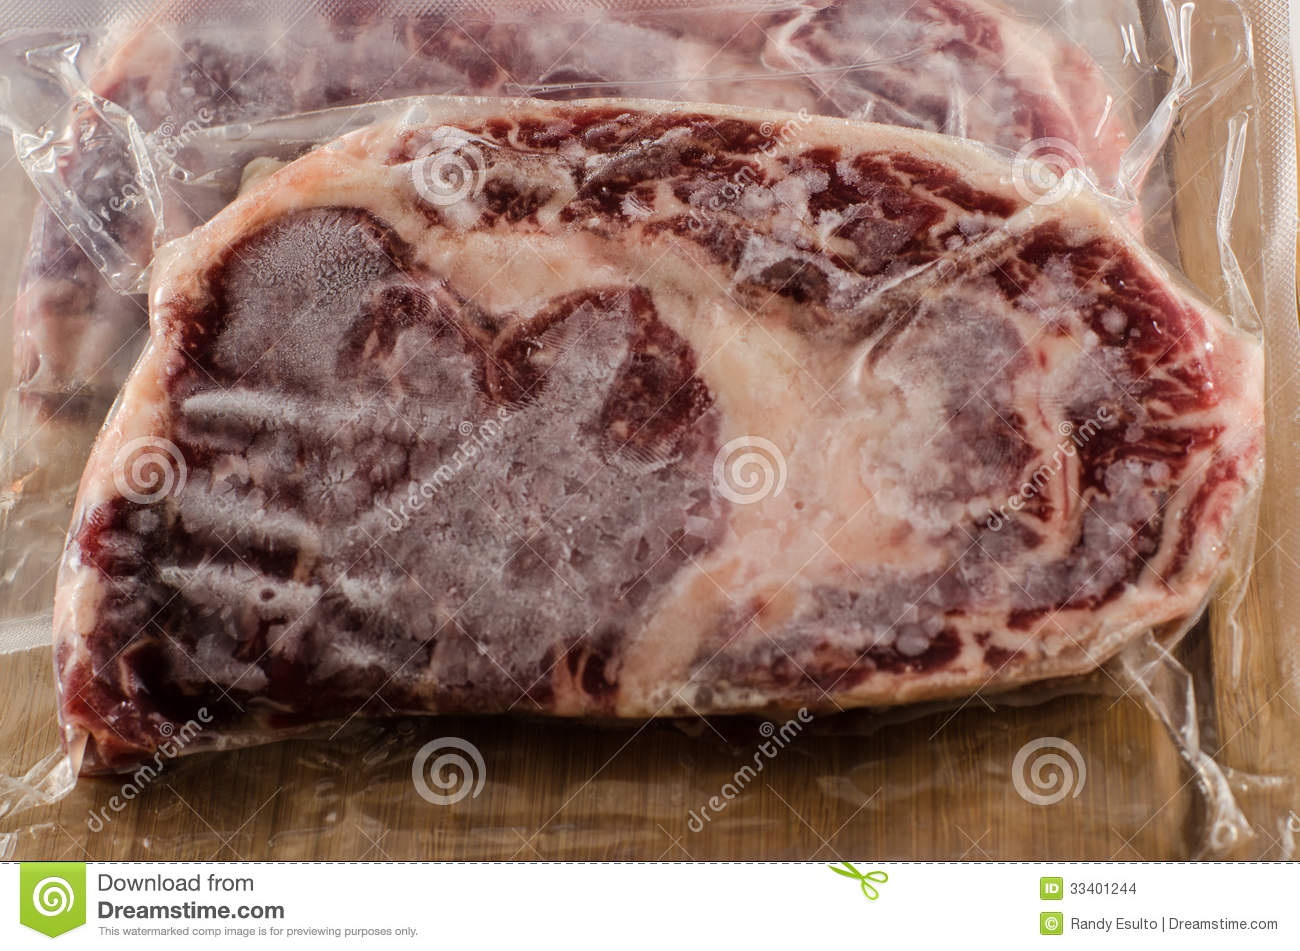 Frozen Vacuum Sealed Beef Rib Eye Steaks